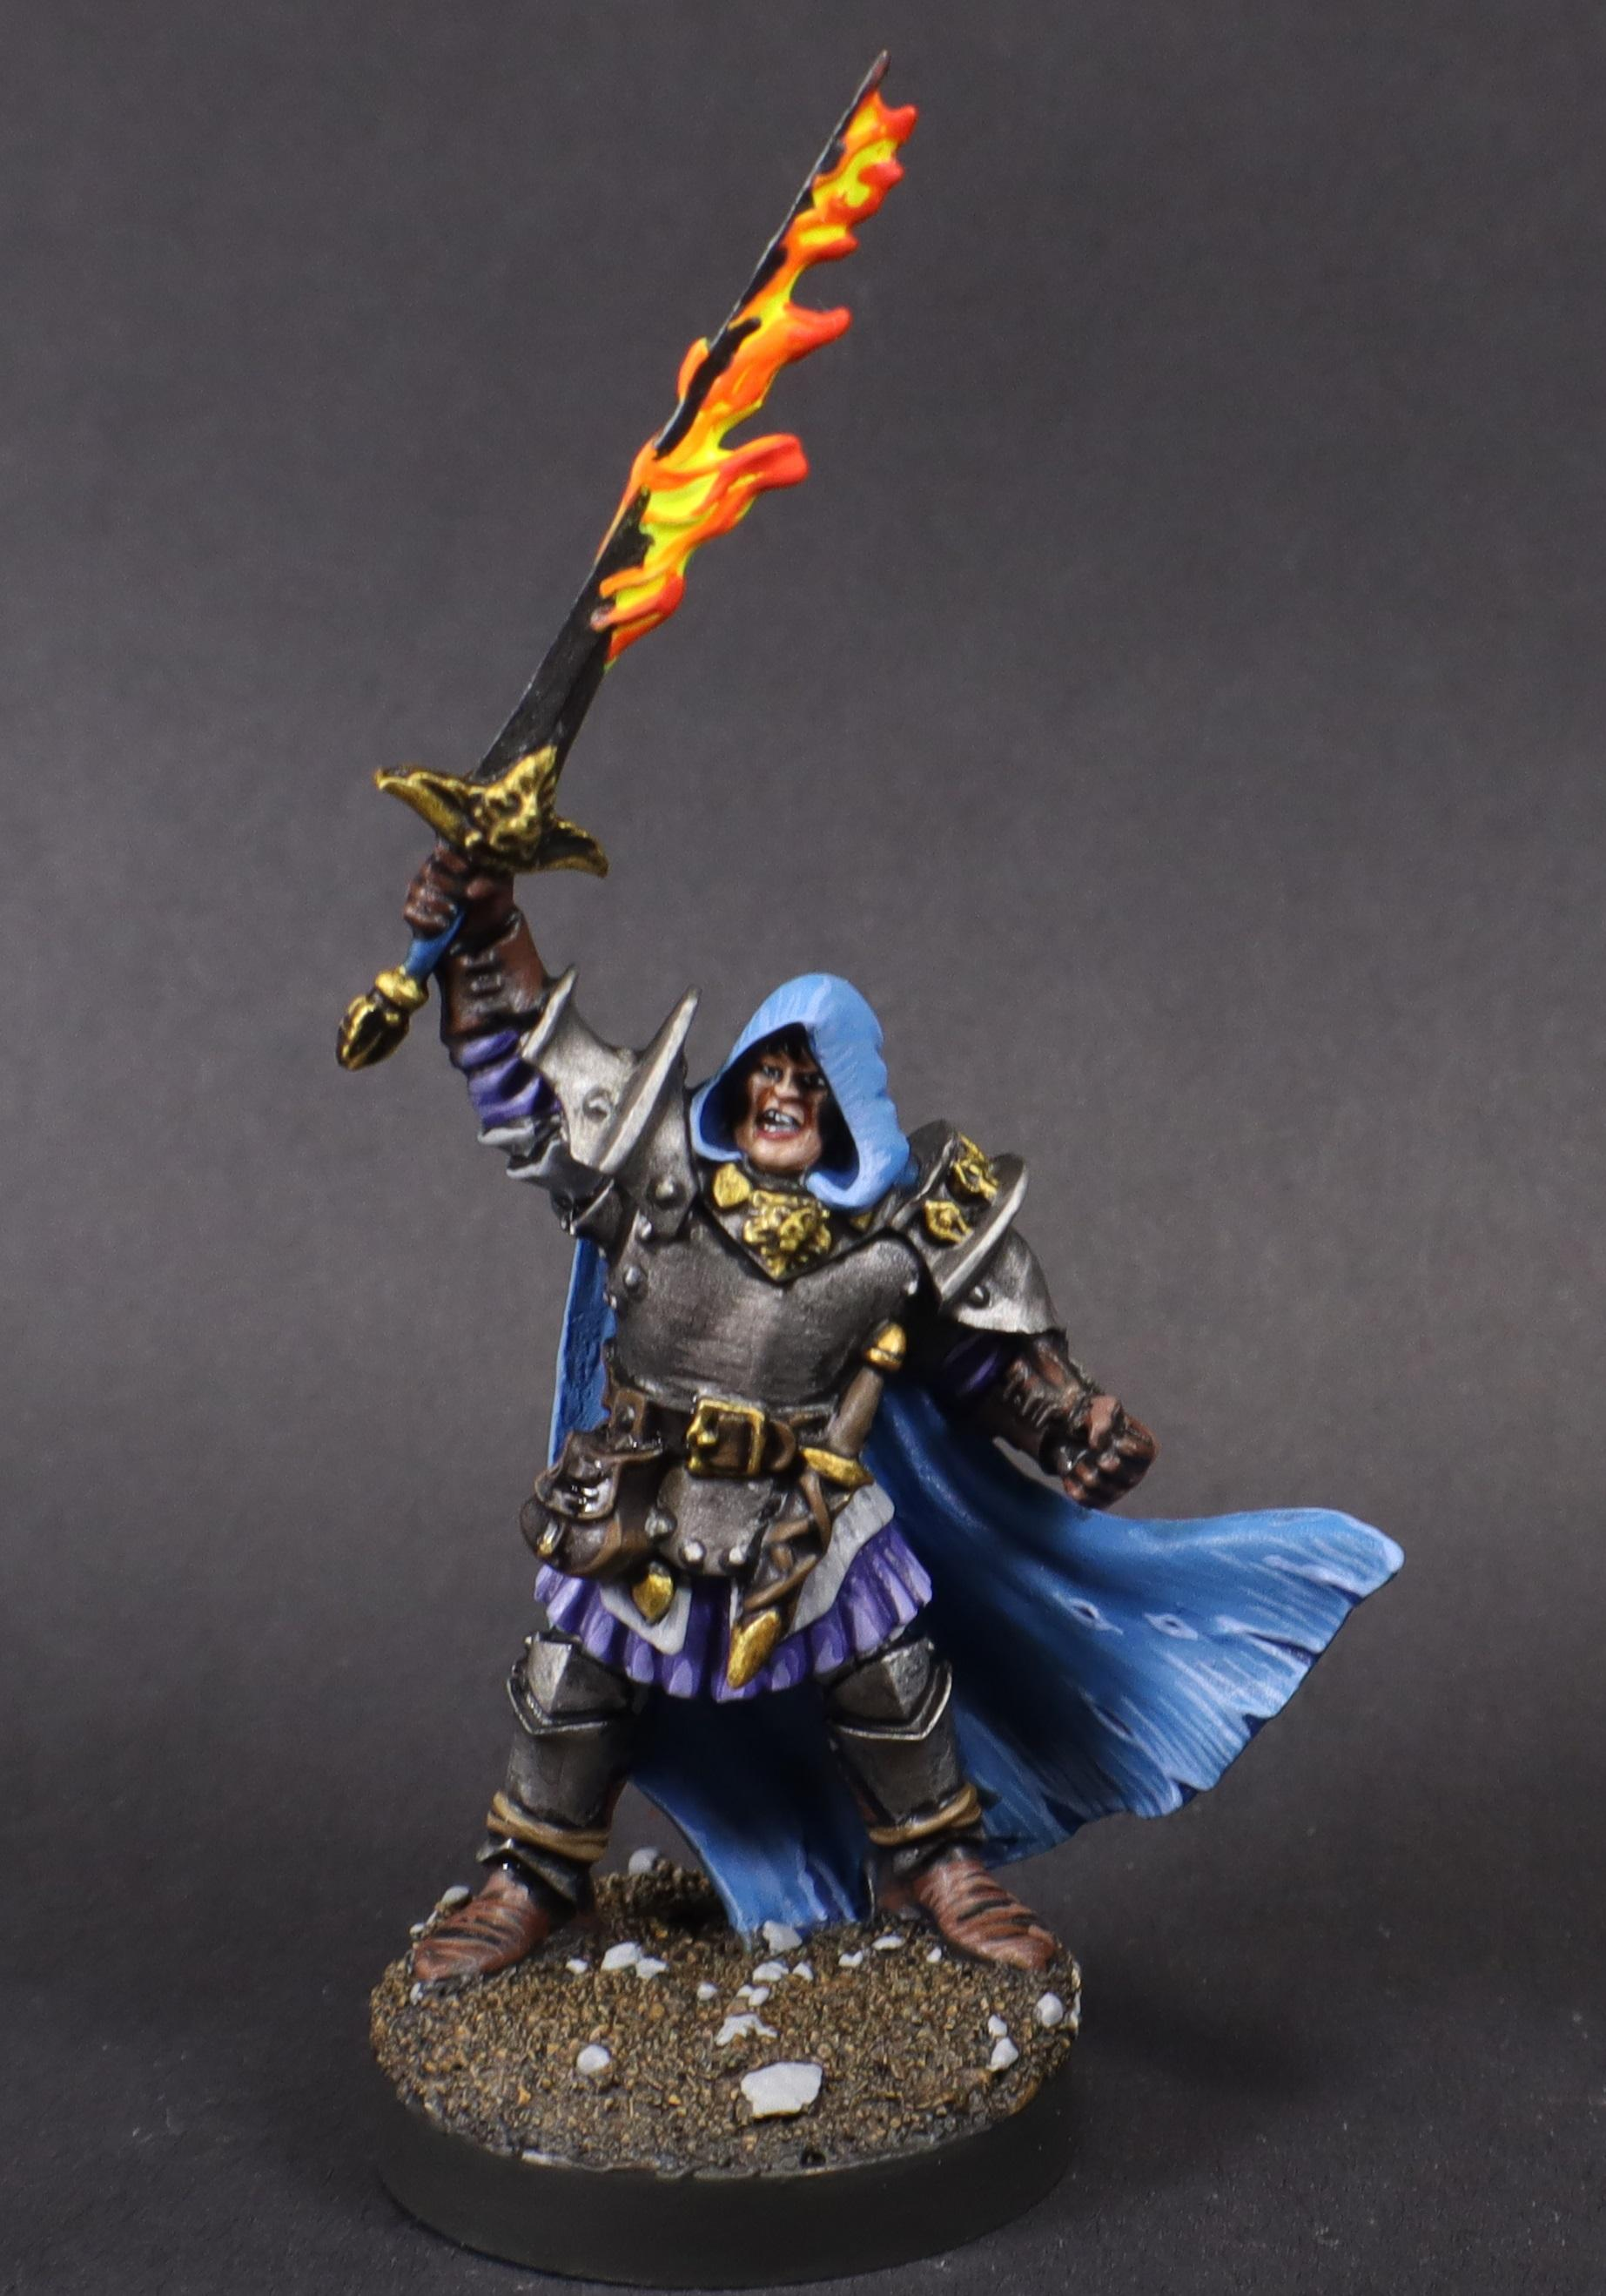 03974, Carrero Arts, Carreroarts, Dark Heaven Legends, Dungeons And Dragons, Light's Hand Captain, Miniature Painting, Painted Dark Heaven Minis, Painted Metal Miniatures, Painted Mini, Painted Miniature, Painted Miniatures, Painted Reaper, Painted Reaper Metal Minis, Painted Reaper Miniature, Painted Reaper Miniatures, Painted Reaper Minis, Pathfinder Rpg, Pro Painted Miniature, Pro Painted Reaper Metal Miniatures, Pro Painted Reaper Mini, Reaper Metal Minis, Reaper Metal Minis Painted, Reaper Mini, Reaper Miniatures, Reaper Minis, Reaper Minis Painted, Reaper Painted, Reaper Painted Miniature, Reaper Painted Miniatures, Rpg Miniature, Table Top Wargames